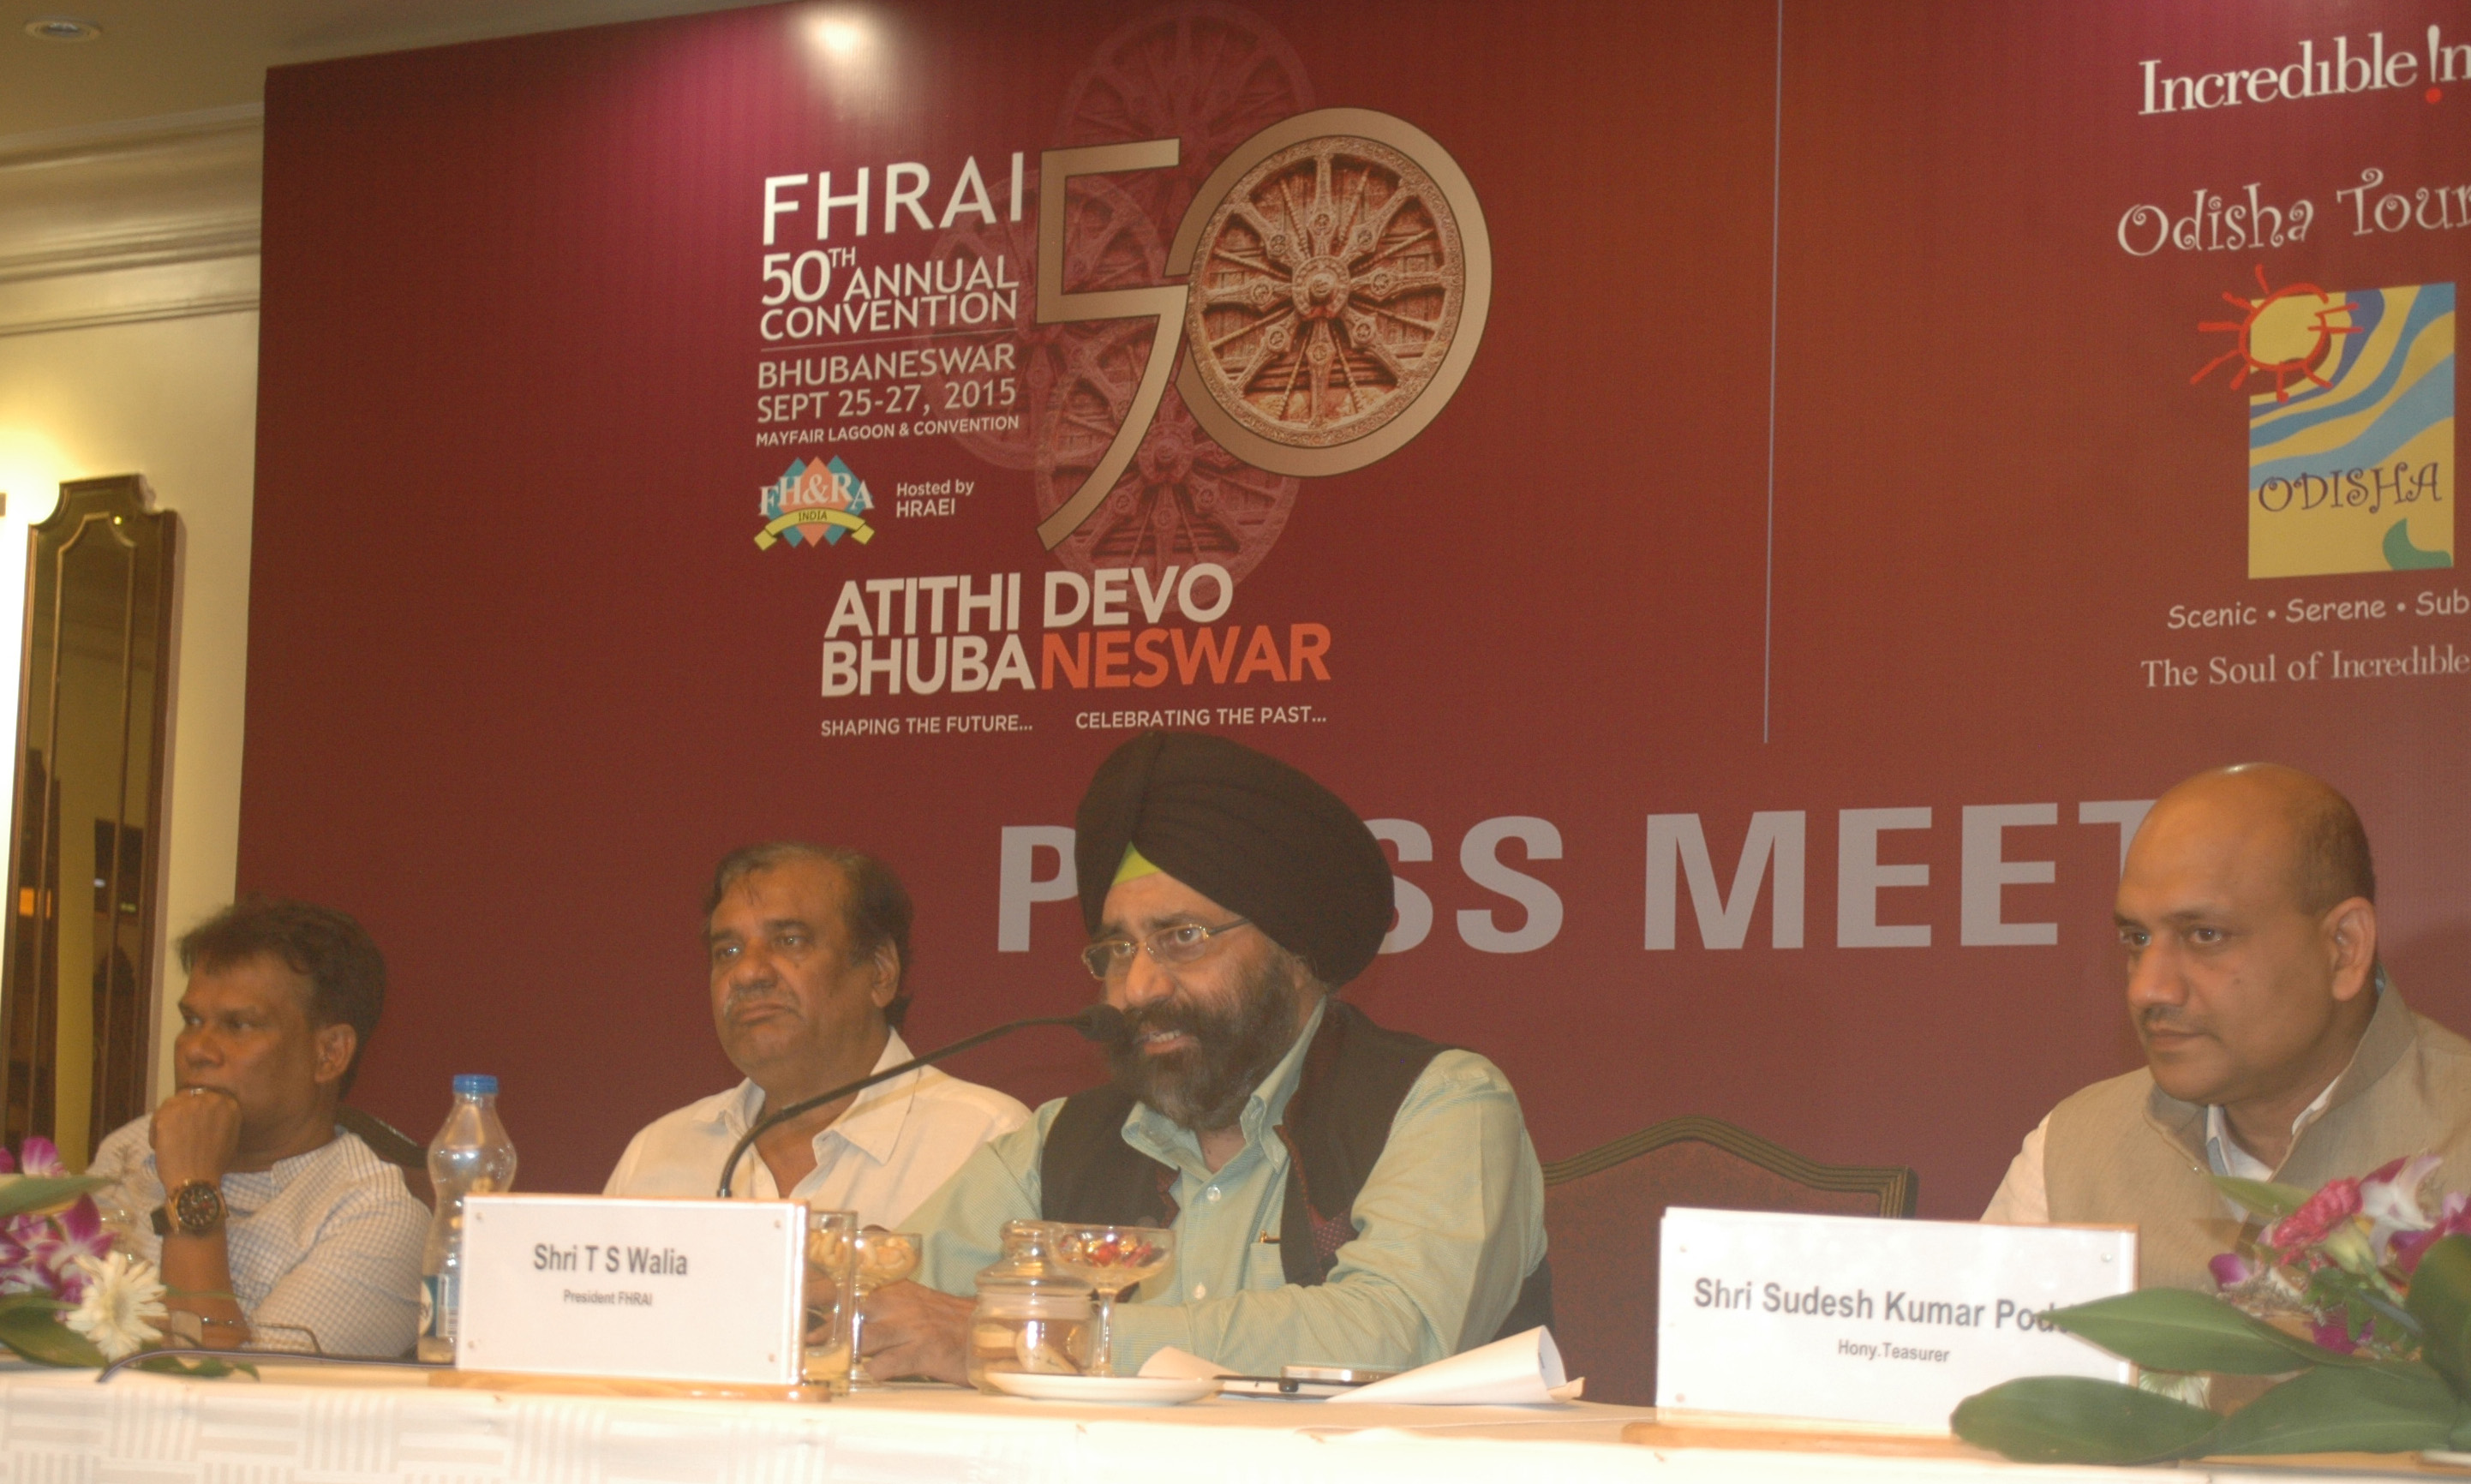 Photograph - FHRAIs 50th Annual Convention Atithi Devo Bhubaneswar 2